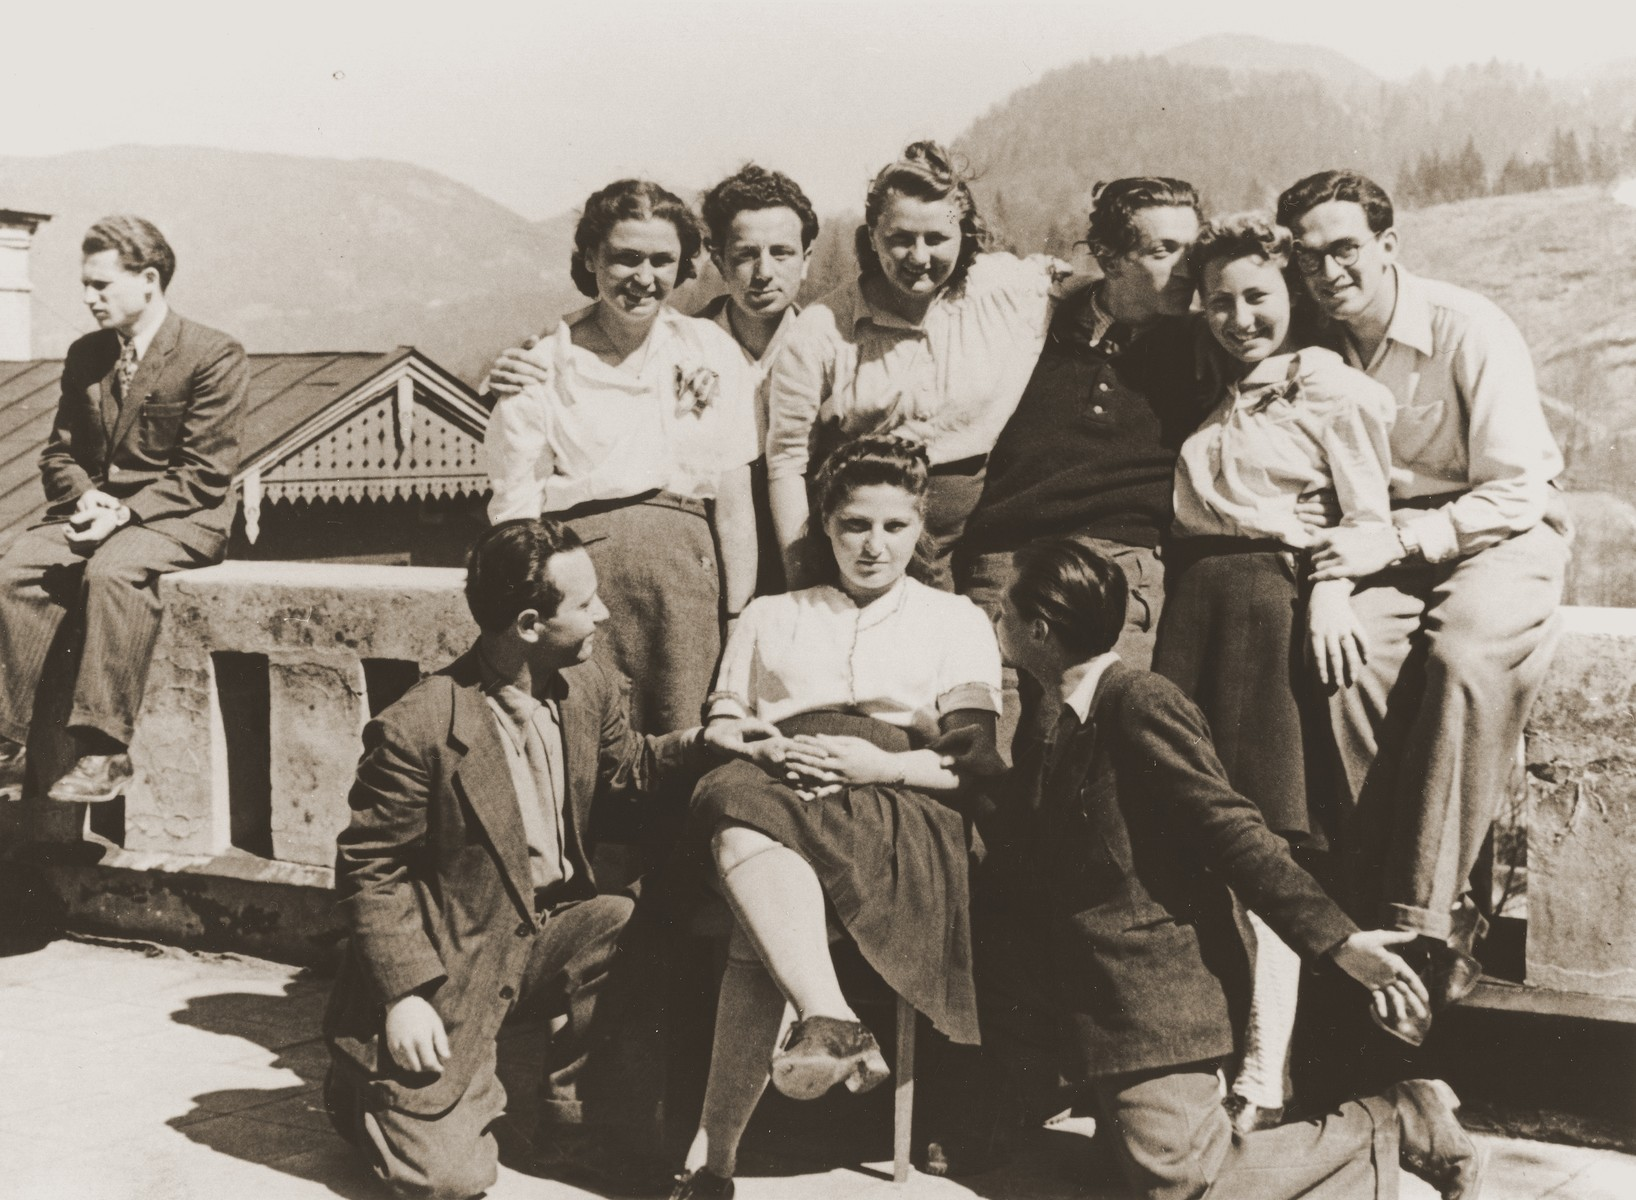 Group portrait of Jewish DP college students from Munich on an excursion to Berchtesgaden.  Janka Sklarczyk from Sloniki is on the far left in the white shirt.  Next to her is Horowitz.  Sandor Bauer is at the bottom left.  Stephan Berko is on the far right and Natan Bierman is in the back, third from the right.